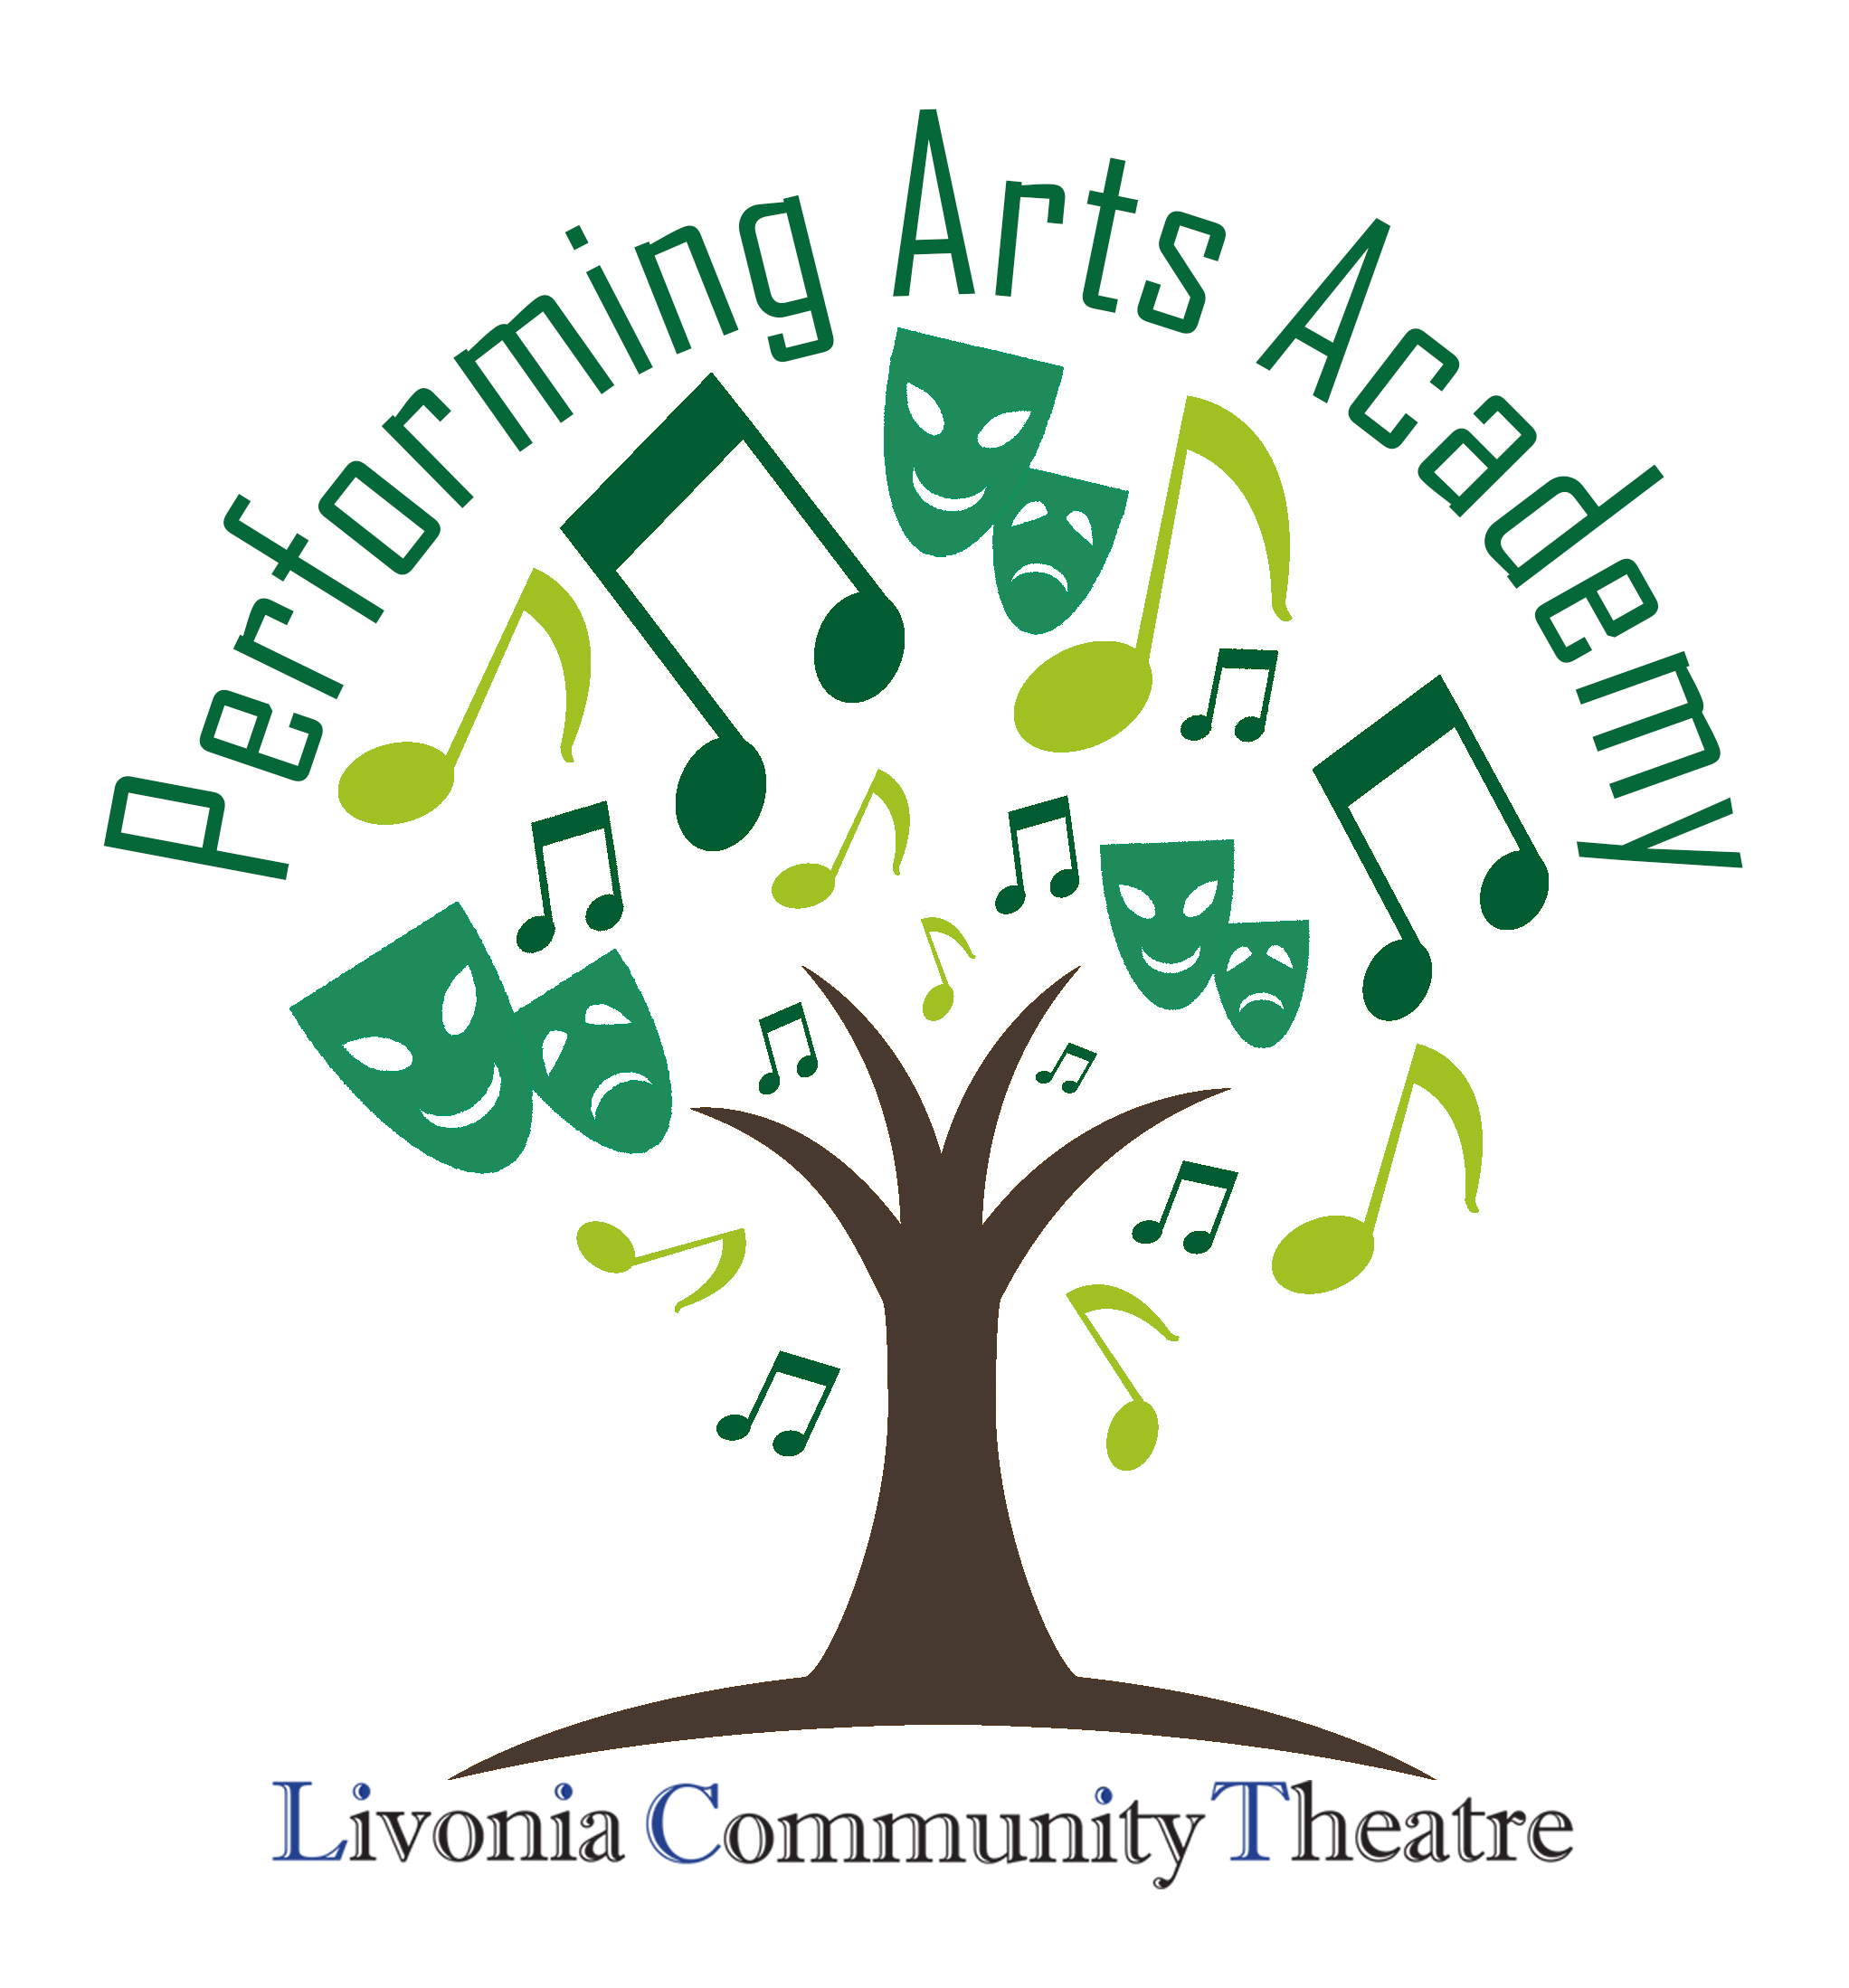 Metro Detroit Performing Arts Academy